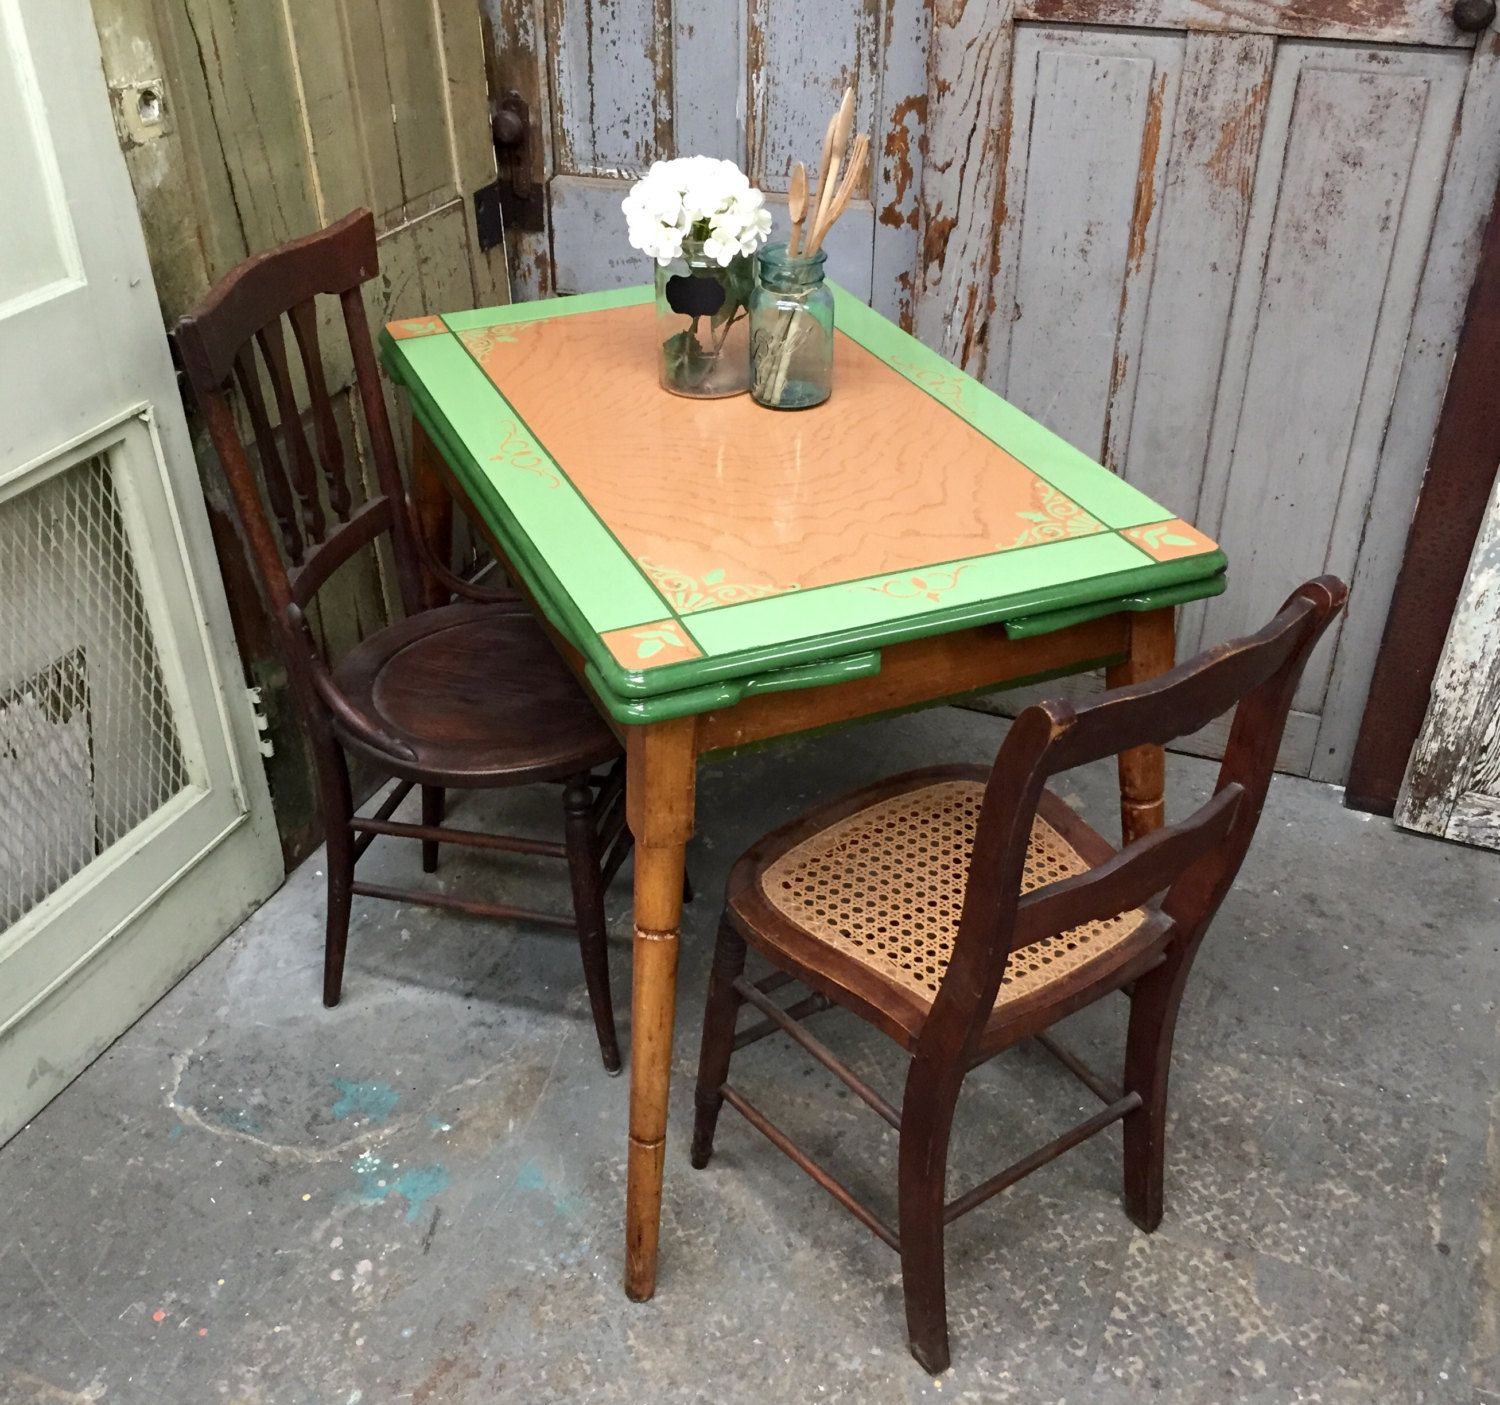 Enamel Top Table, Antique Kitchen Table, Farm Dining Table, Expandable Table,  Country Cottage Decor By VintageHipDecor On Etsy | Pinterest | Farm Dining  ...